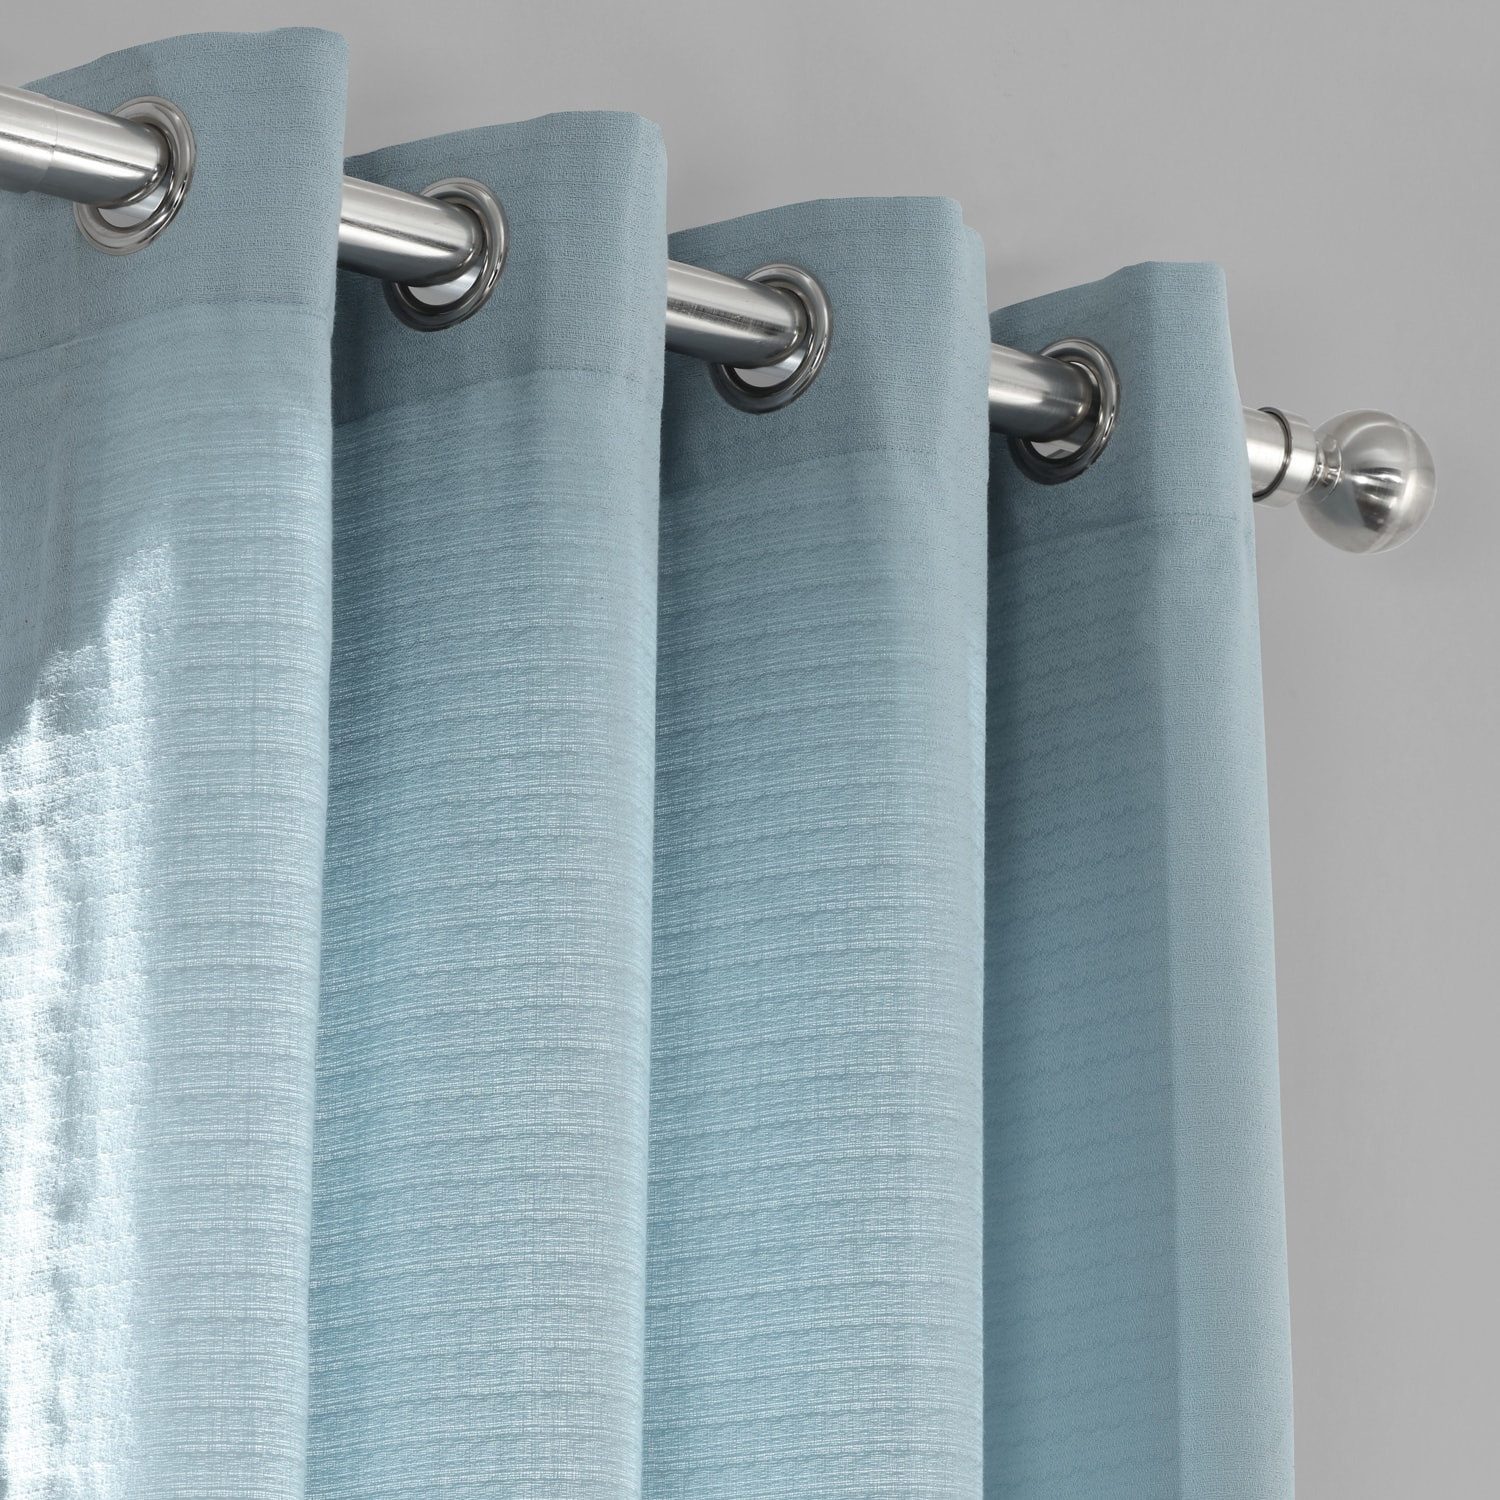 Hpd Half Price Drapes Bwlk 1855 120 Gr Bark Weave Solid Pertaining To Bark Weave Solid Cotton Curtains (View 9 of 20)